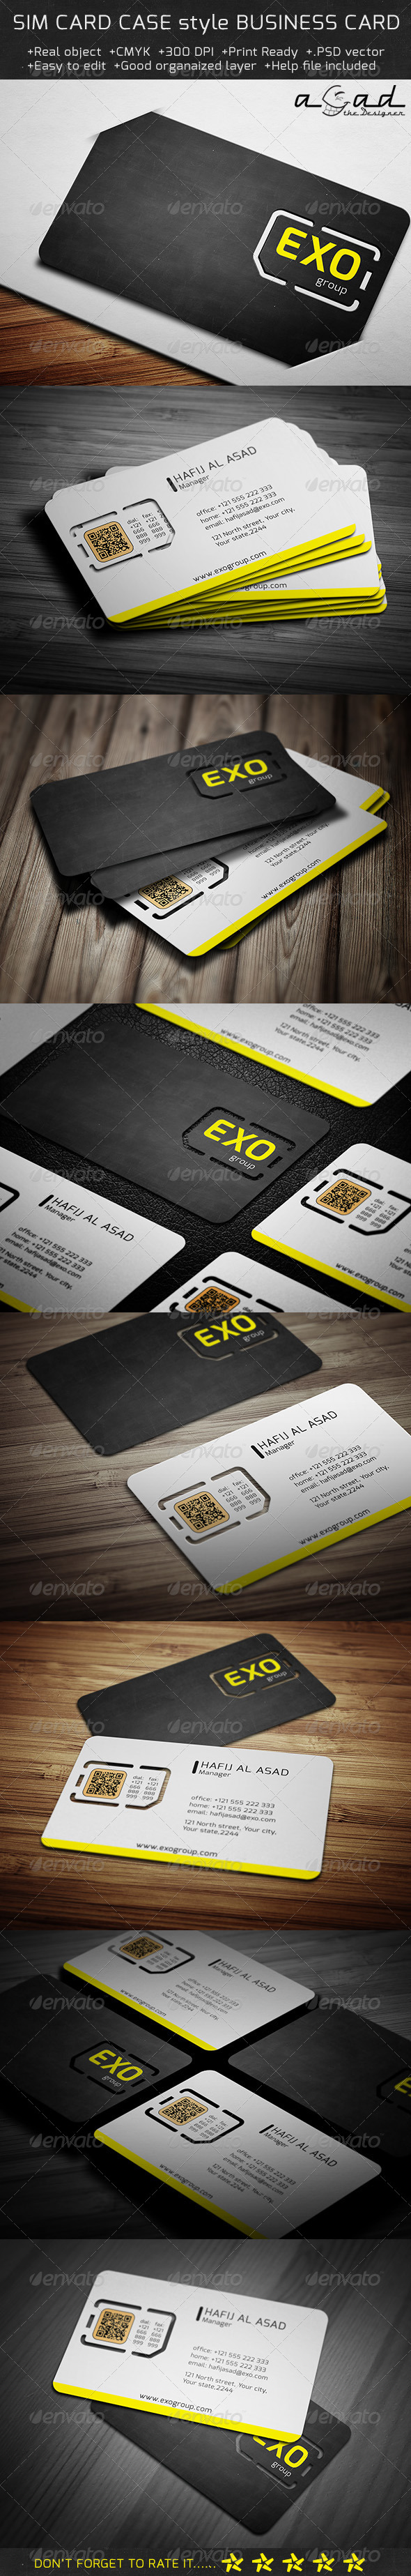 GraphicRiver Sim Card with Cas Style Business Card 6076417